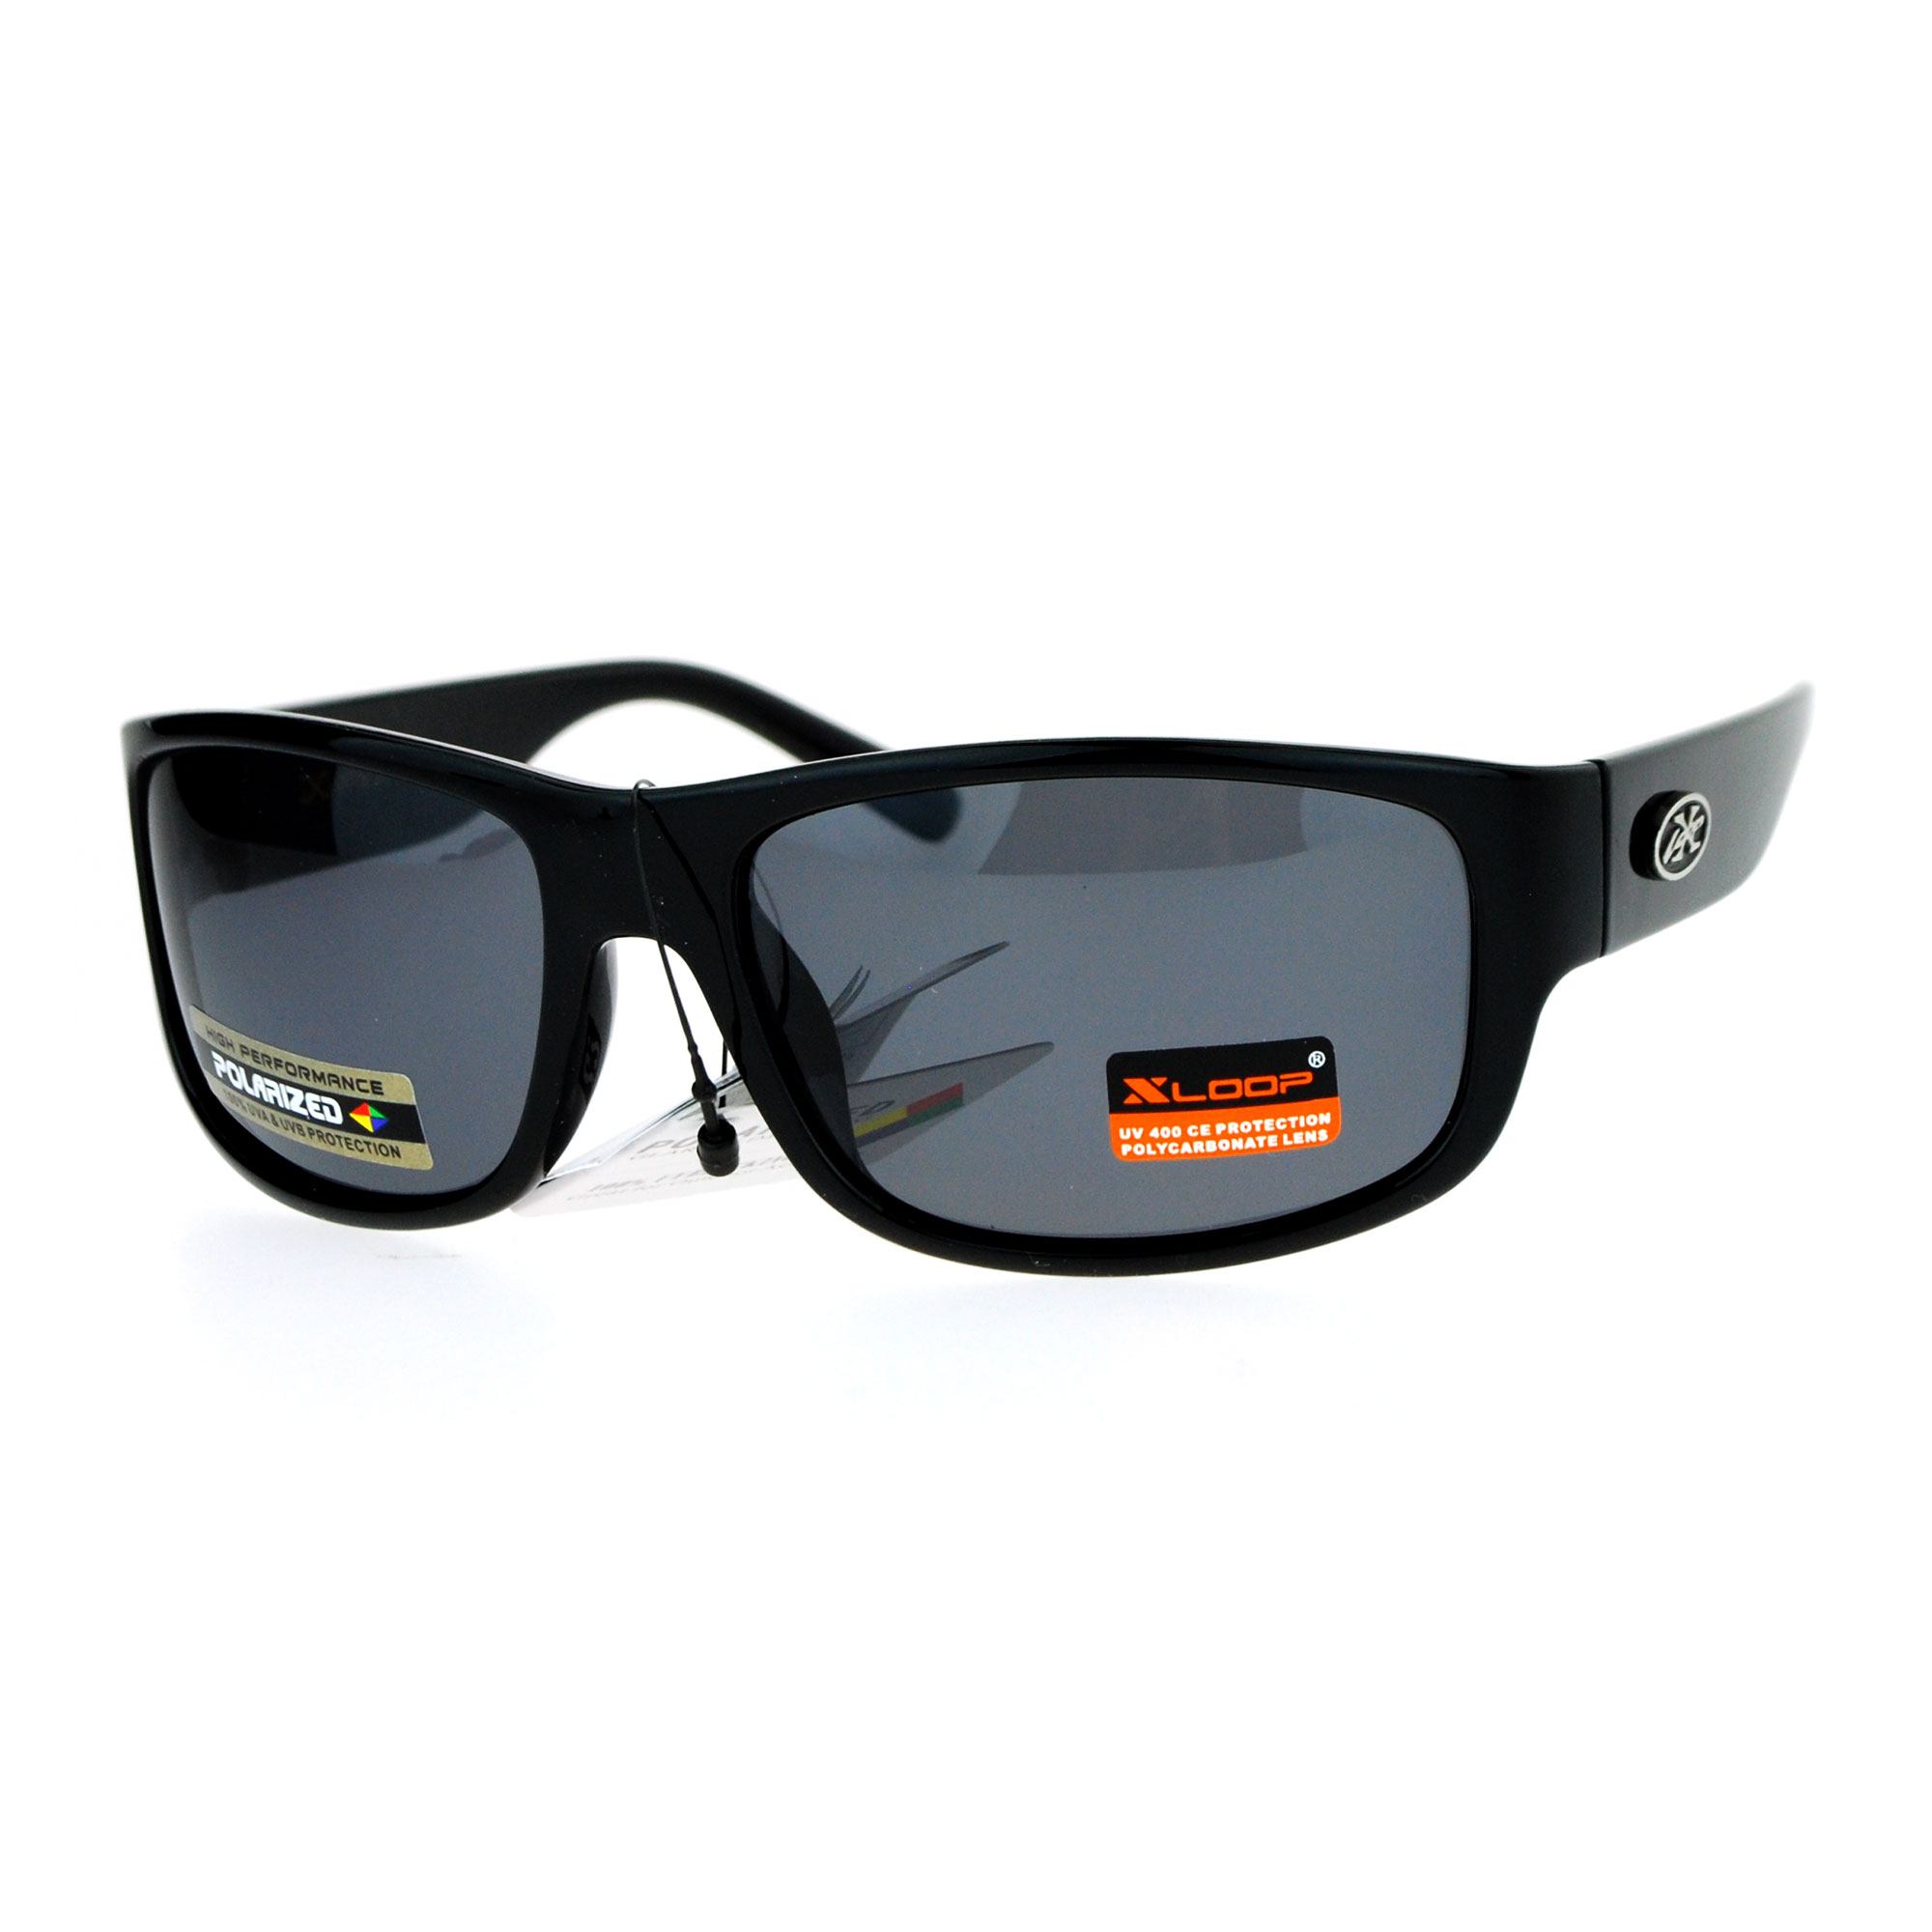 Xloop polarized lens warp rectangular biker style mens for Mens fishing sunglasses